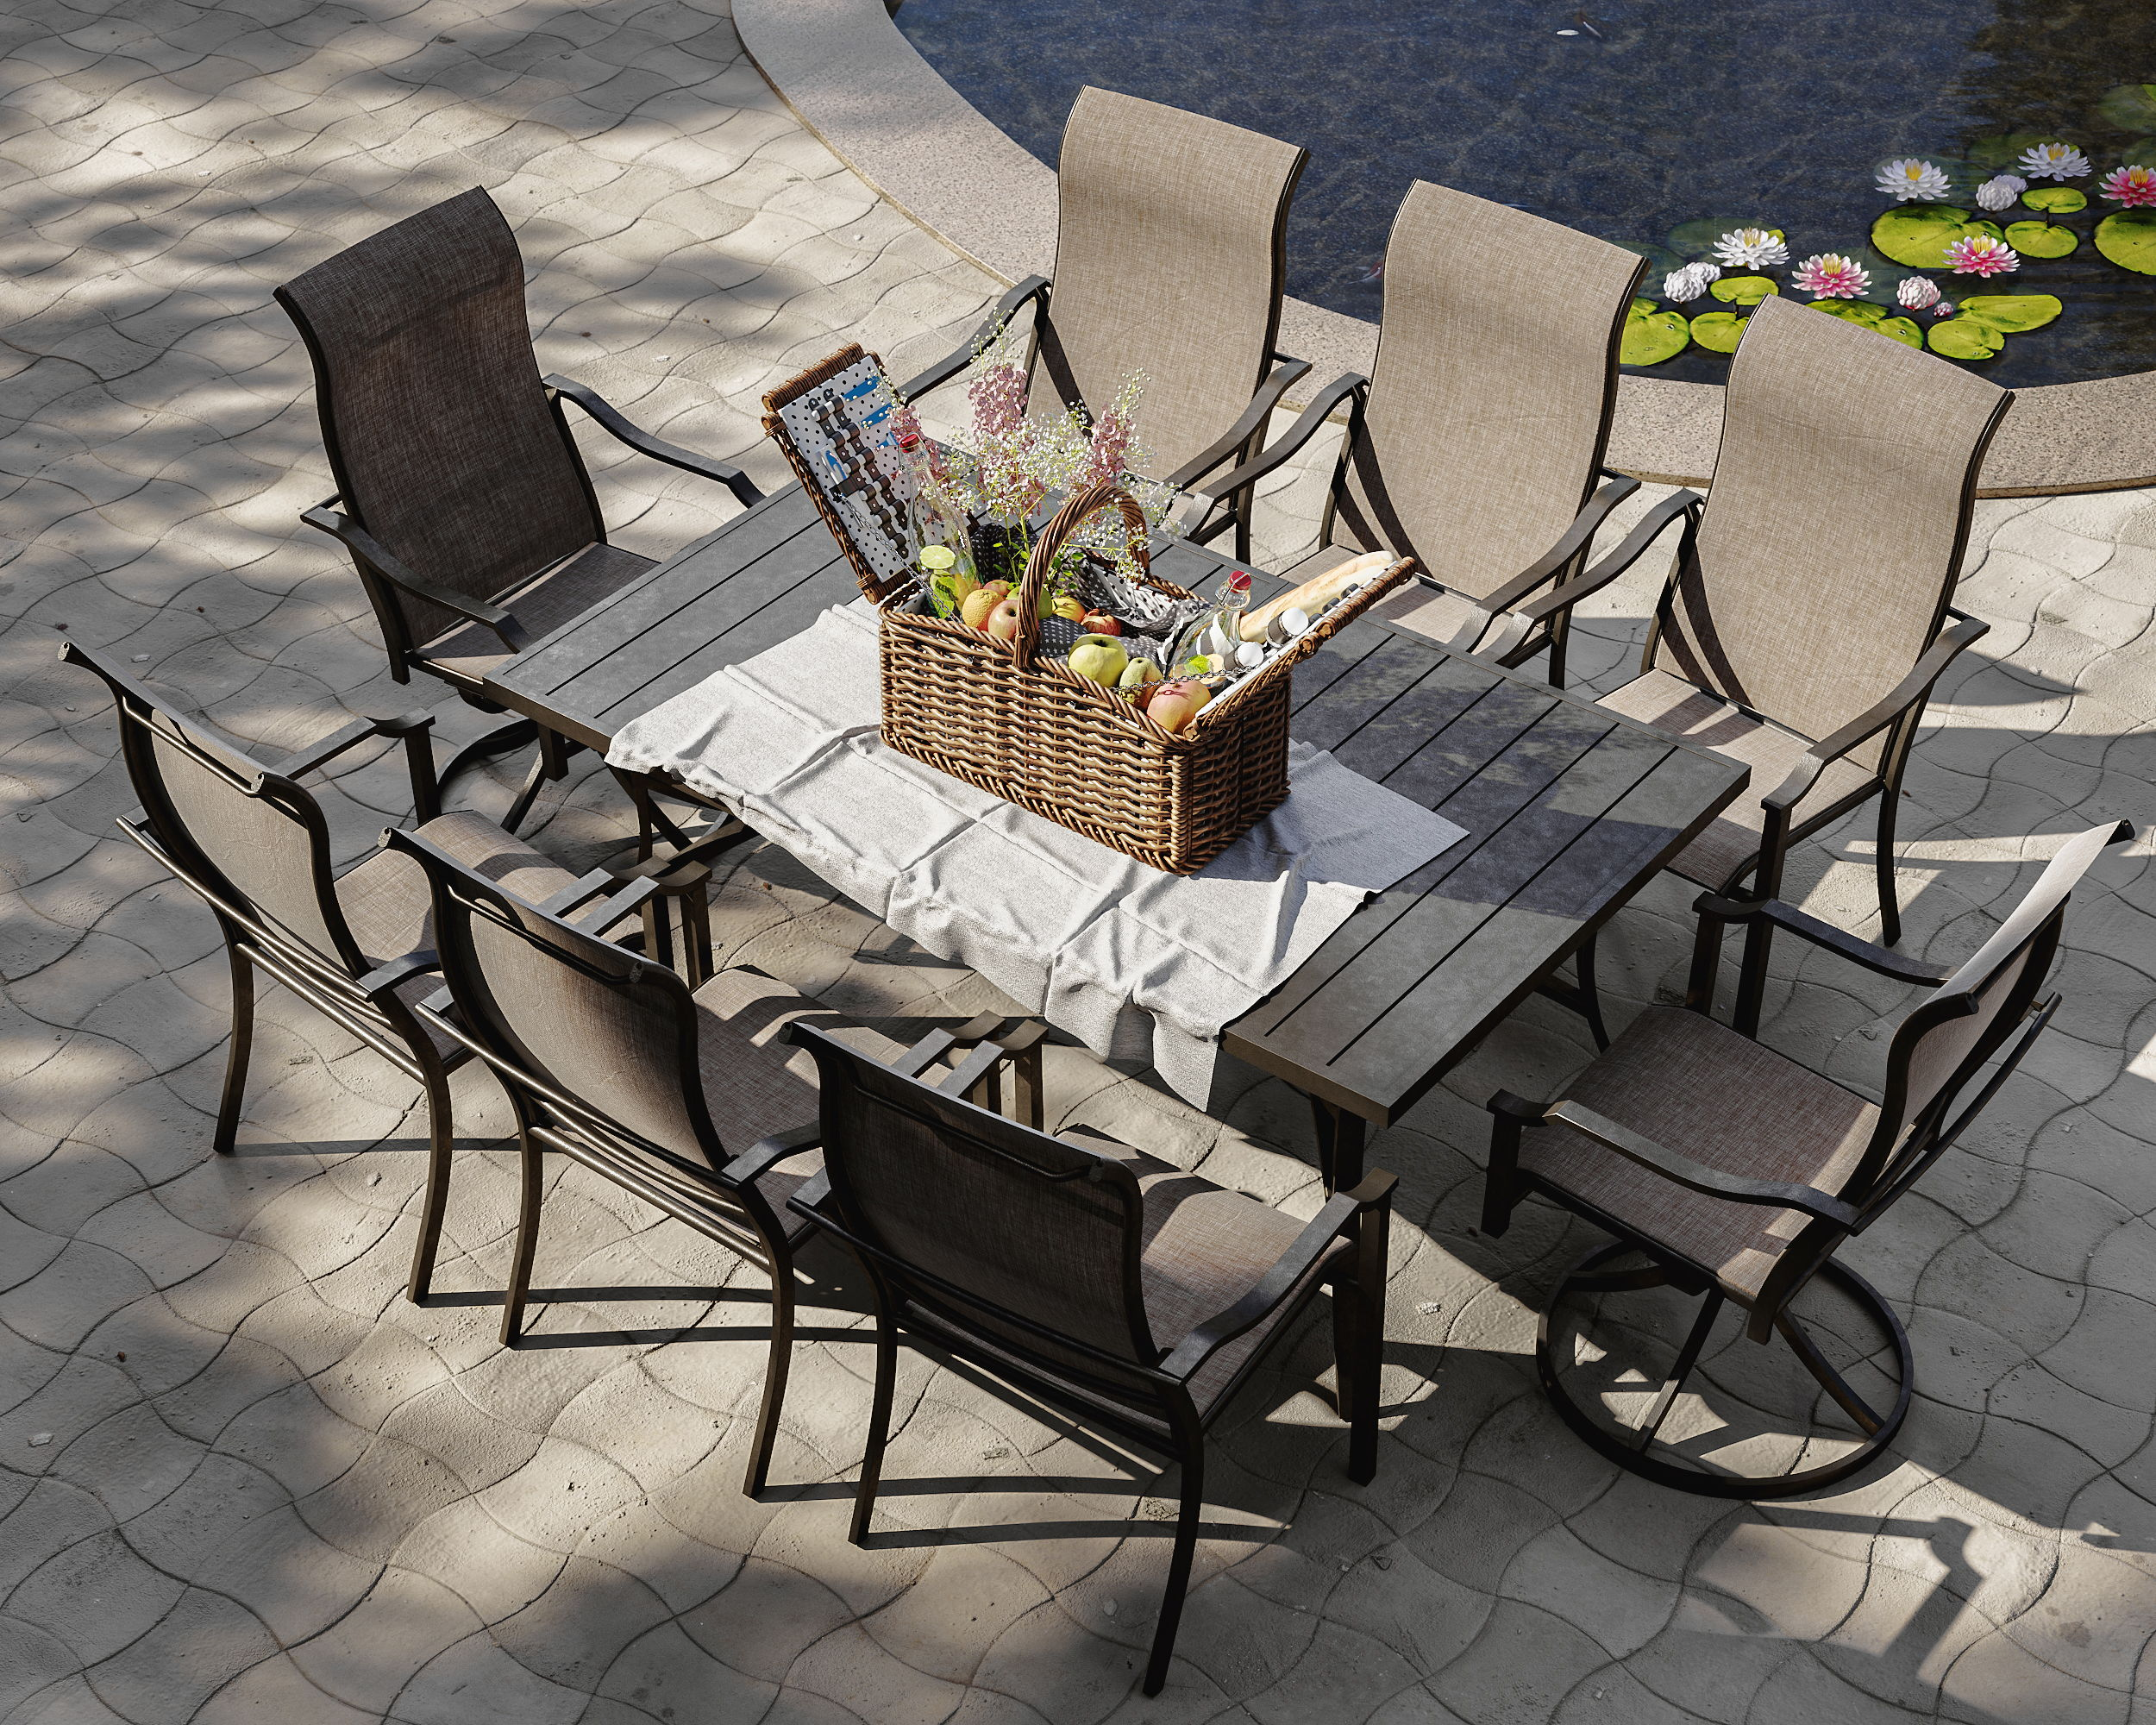 3D Visualization for Outdoor Furniture